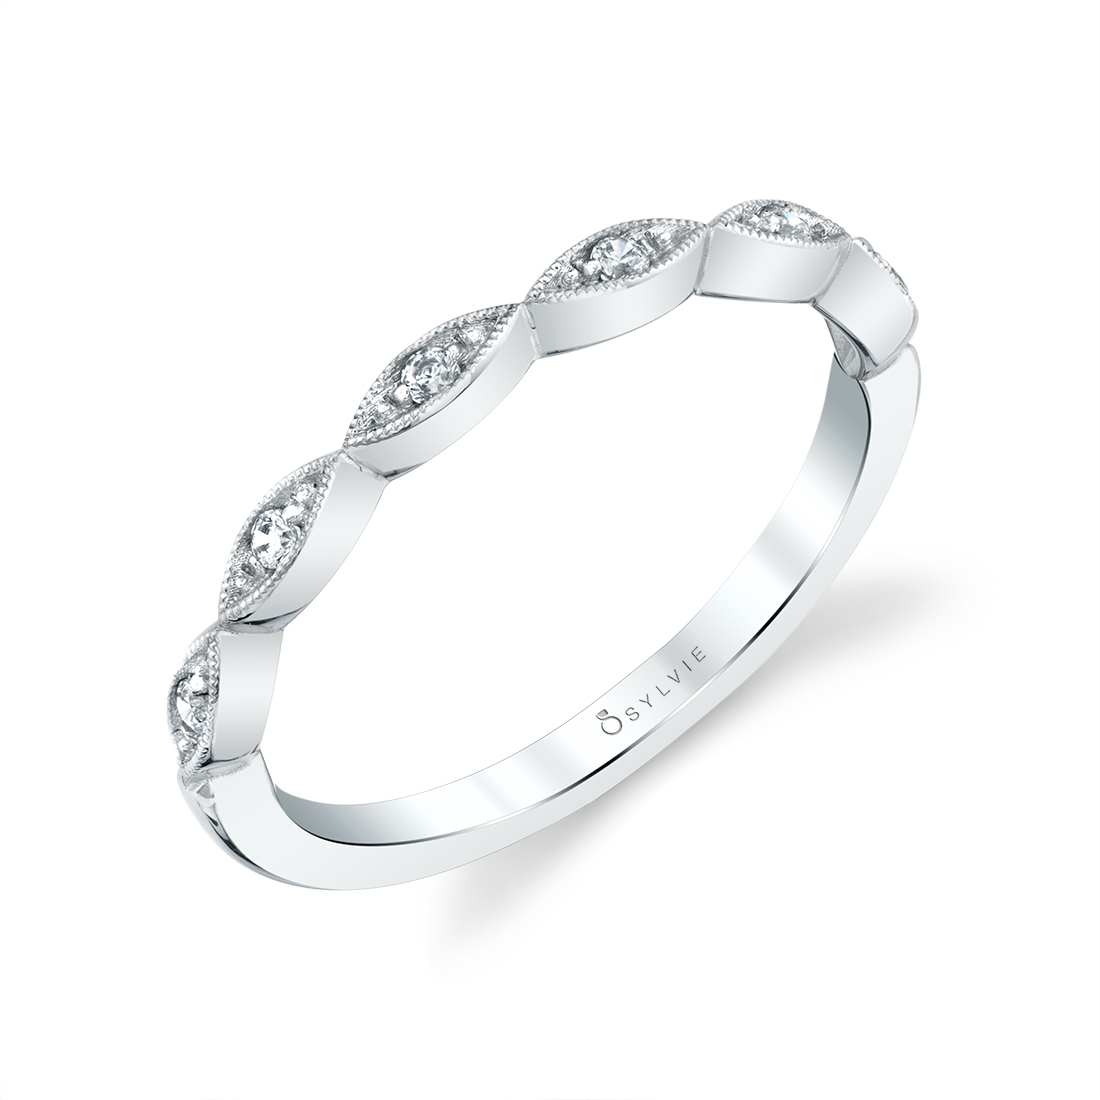 profile image of a unique oval engagement ring by Sylvie